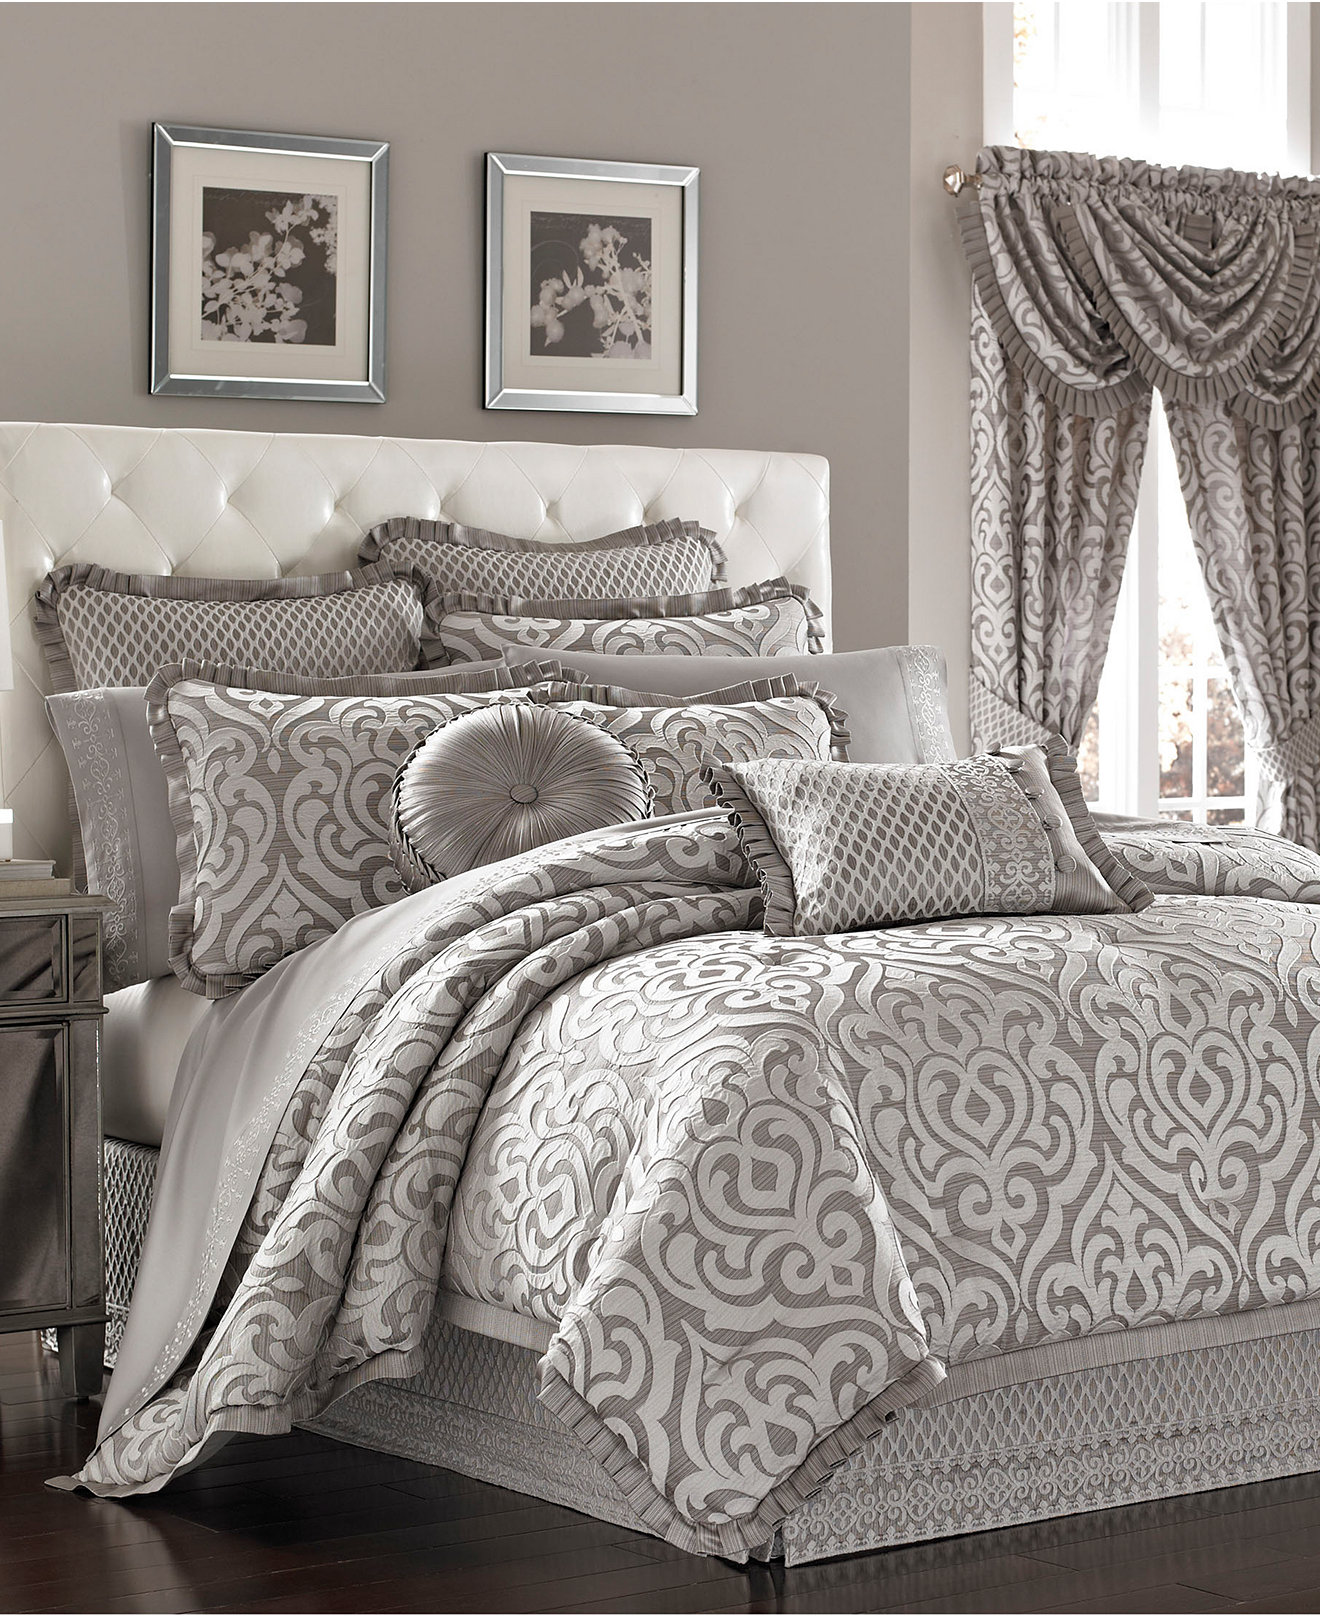 Creative donna karan bedding with Cushion and pillows also beautiful duvet cover and sidetable and luxury wall paint color